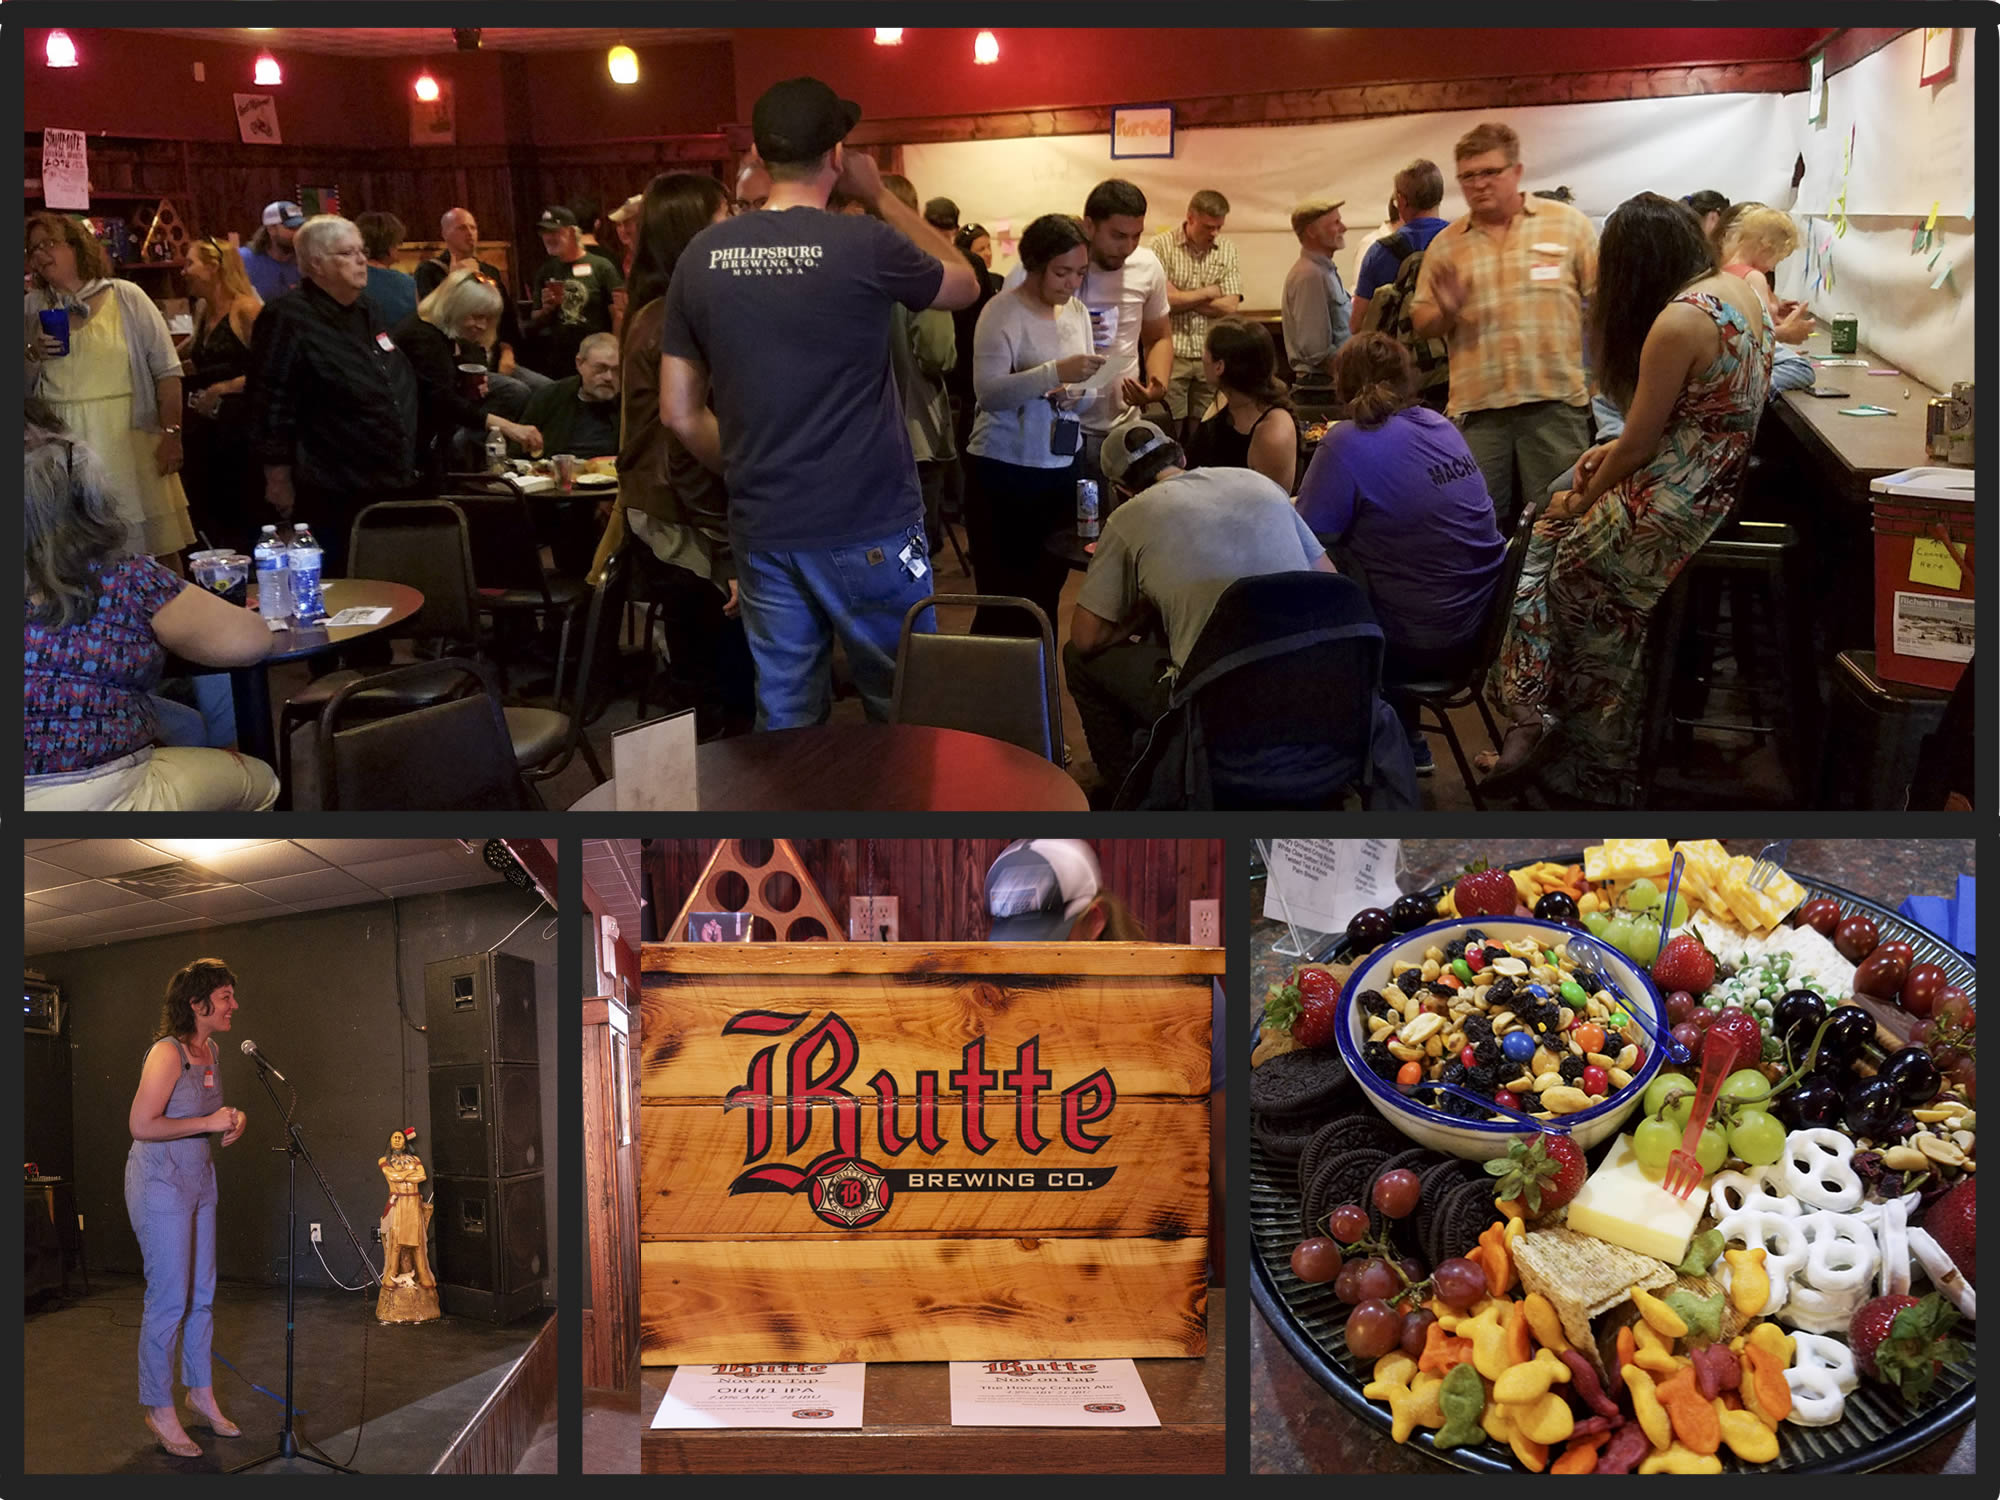 Richest Hill launch party in Butte, June 27, 2018.